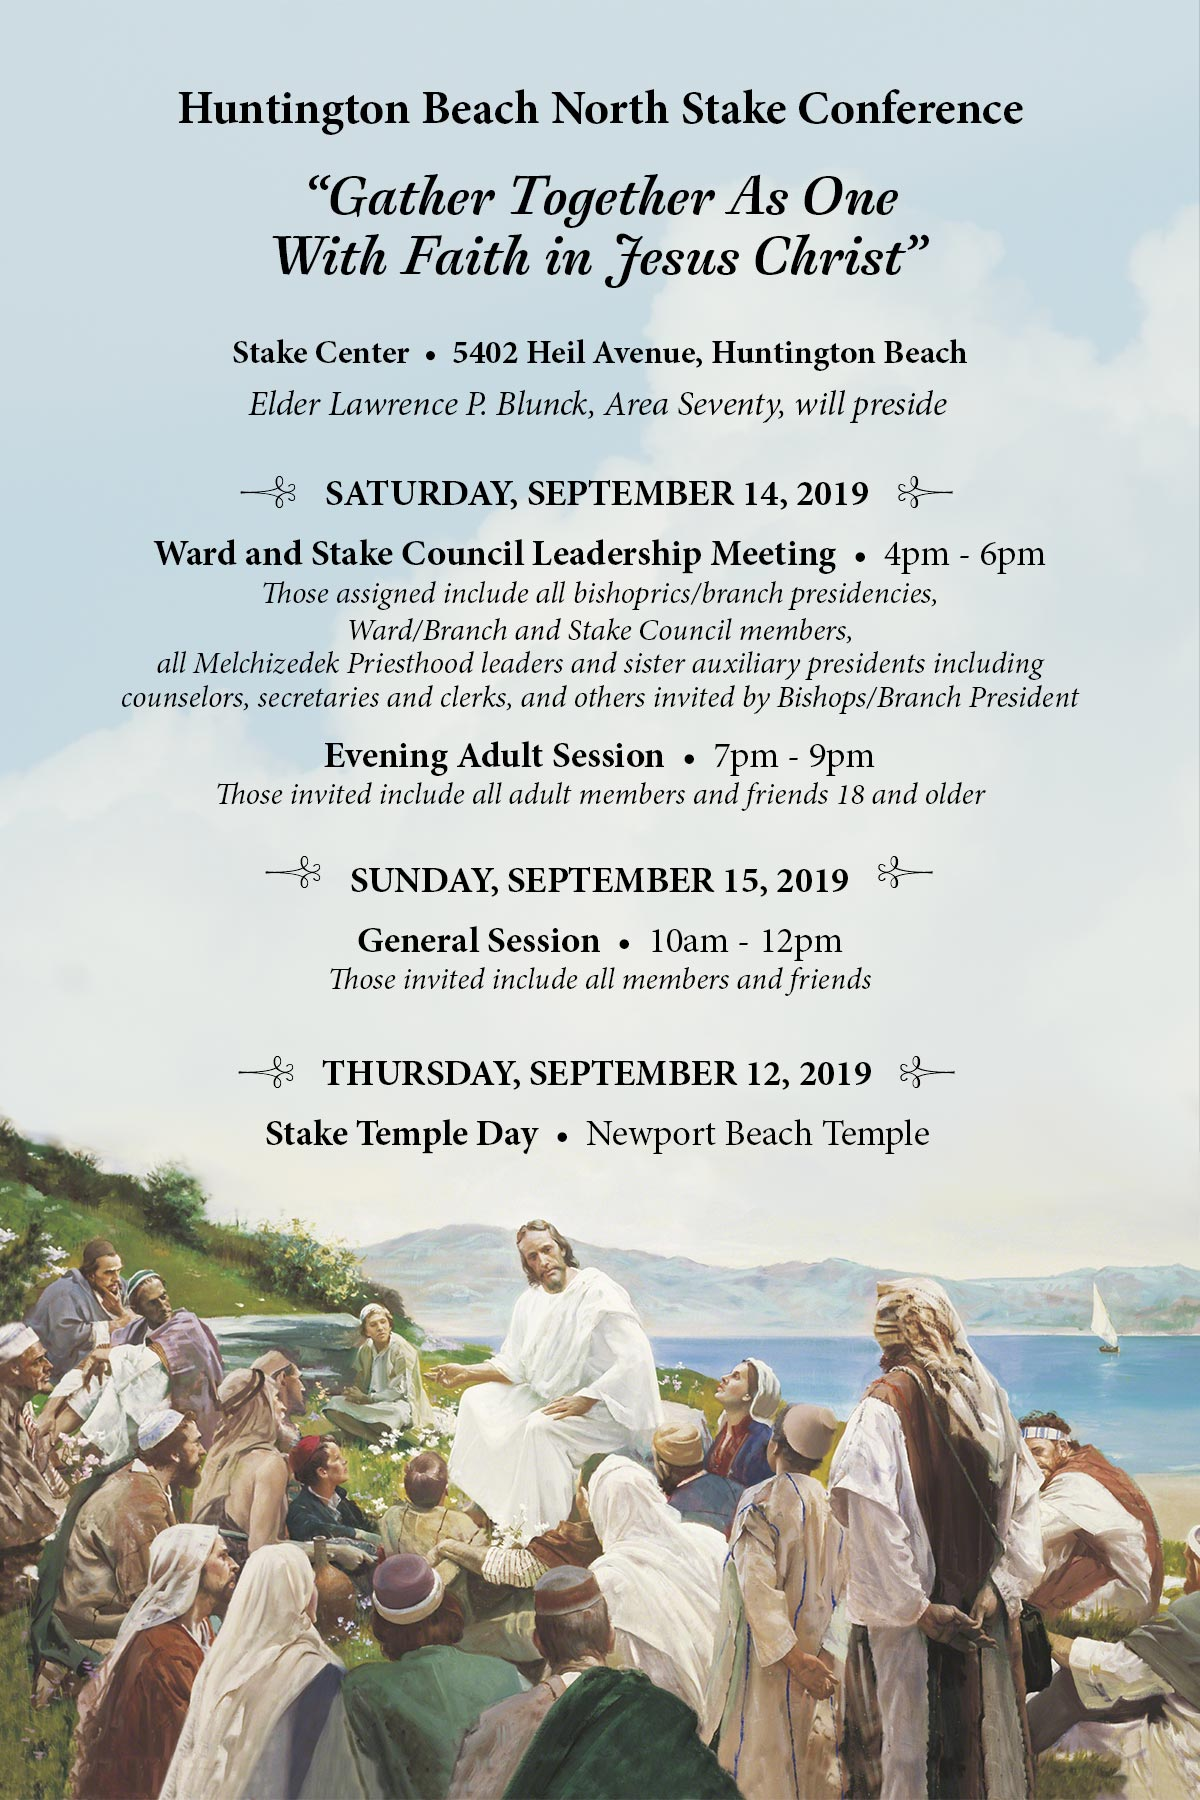 Fall 2019 Stake Conference poster